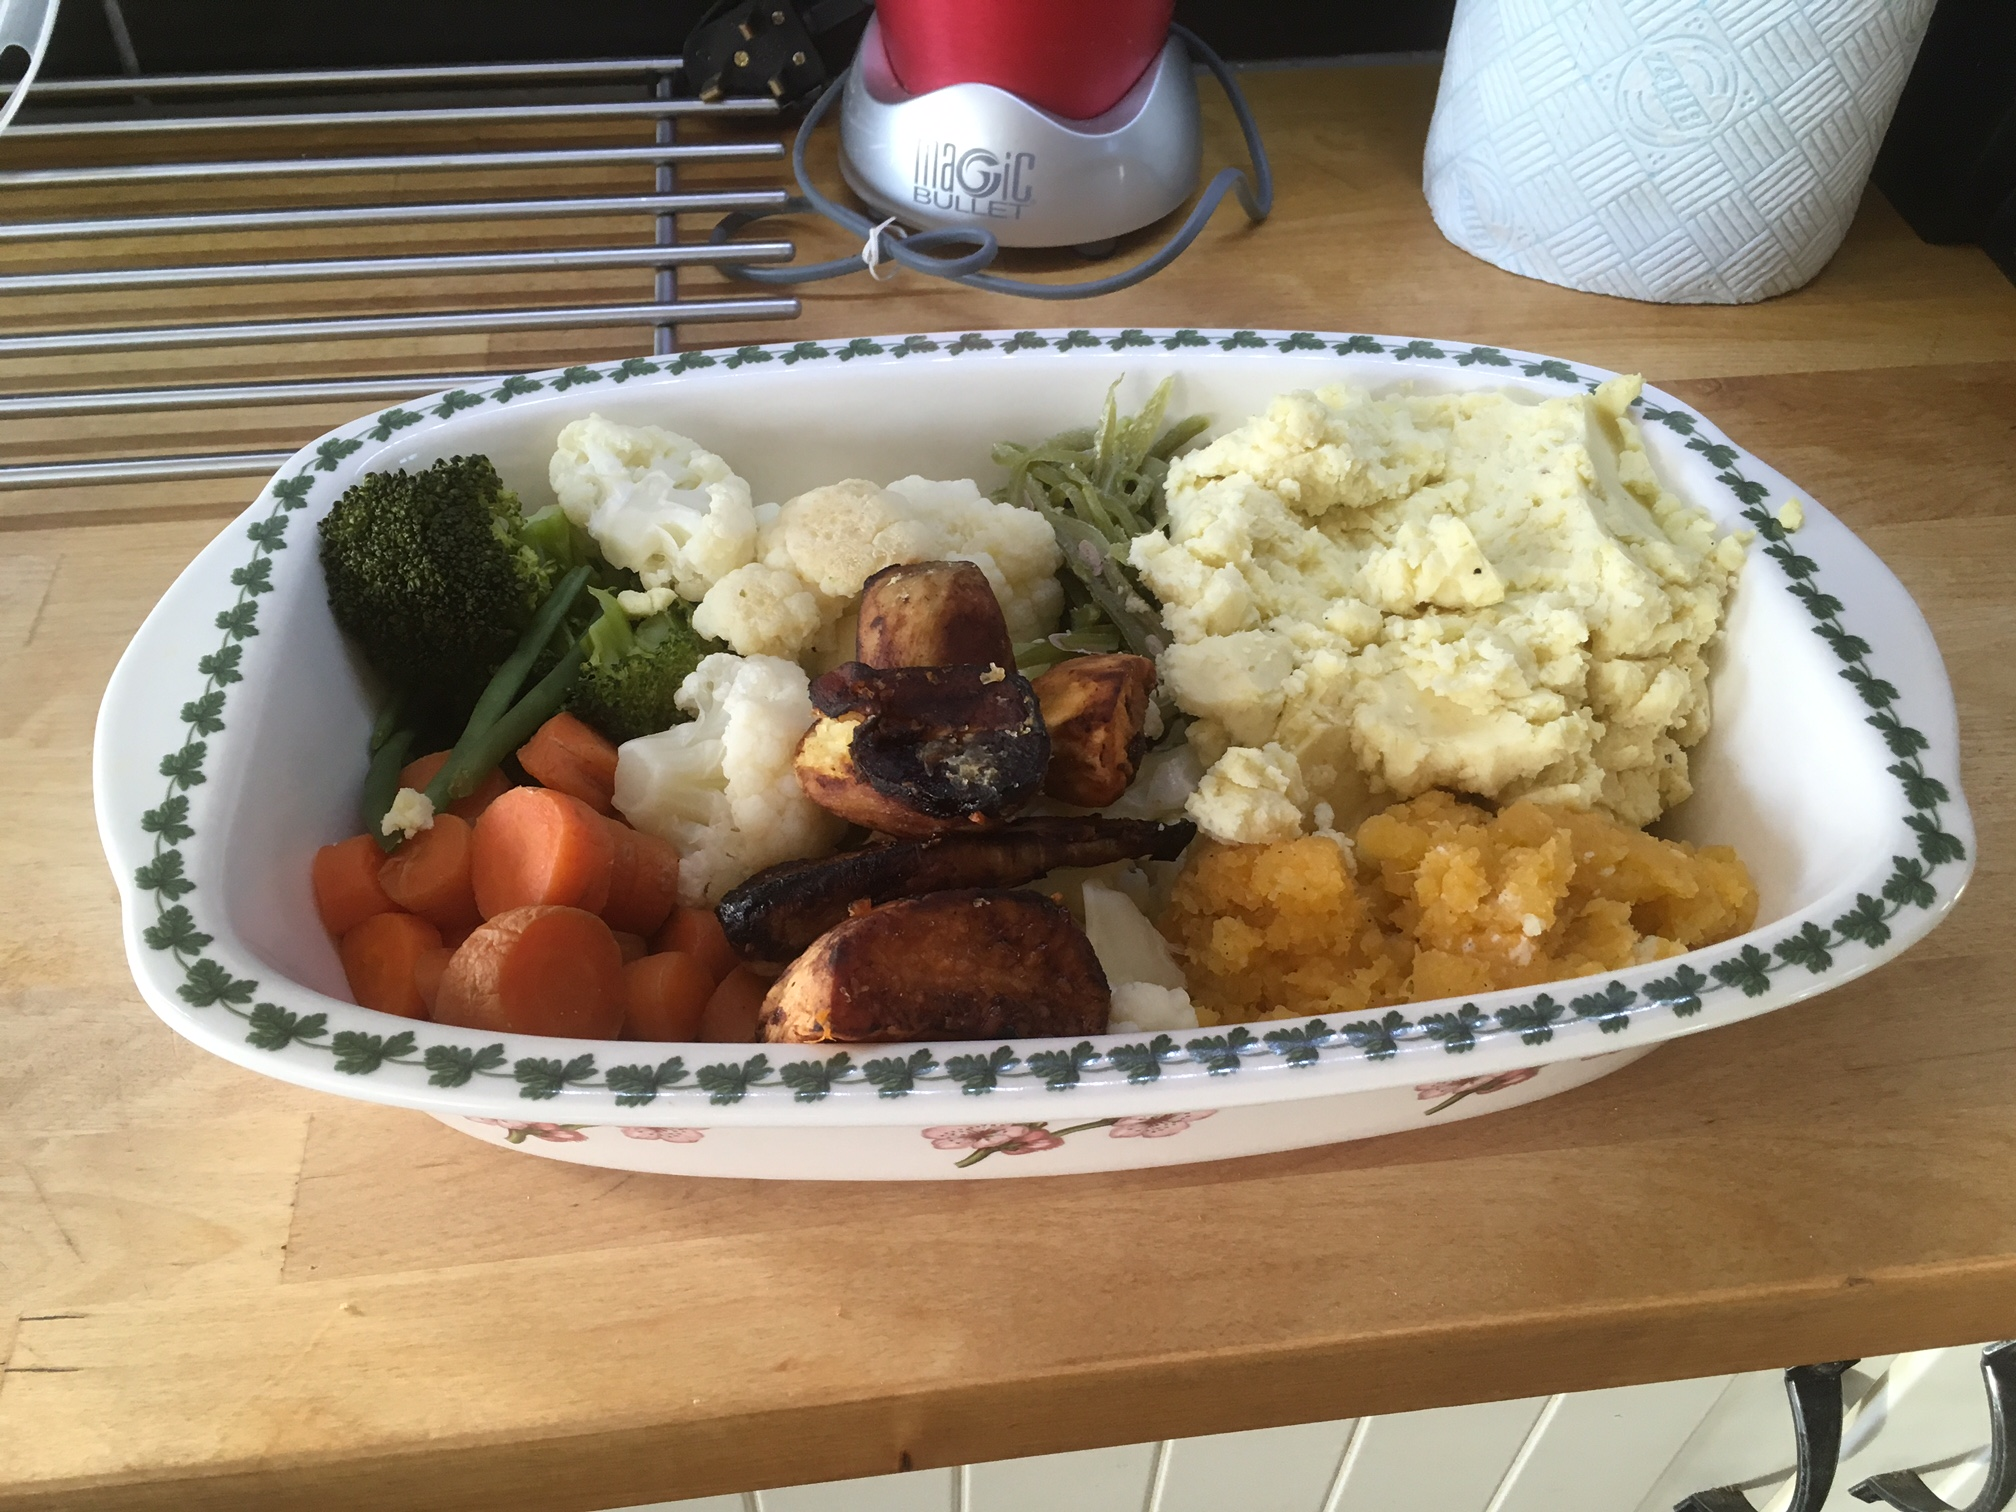 Figure 1:  As you work your way through the Luke R. Davies plan you will become very accustomed to cooking vegetables, hopefully you enjoy (or can learn to) roast dinner type meals! Always cook as much as you possibly can. Leftovers are kept in a large tray in fridge (as shown) for work the next day or for easily reheated snack meals. This is an essential time saving habit. The quicker you get on board this routine of bulk prepping the quicker you can streamline your healthy eating around your busy life.